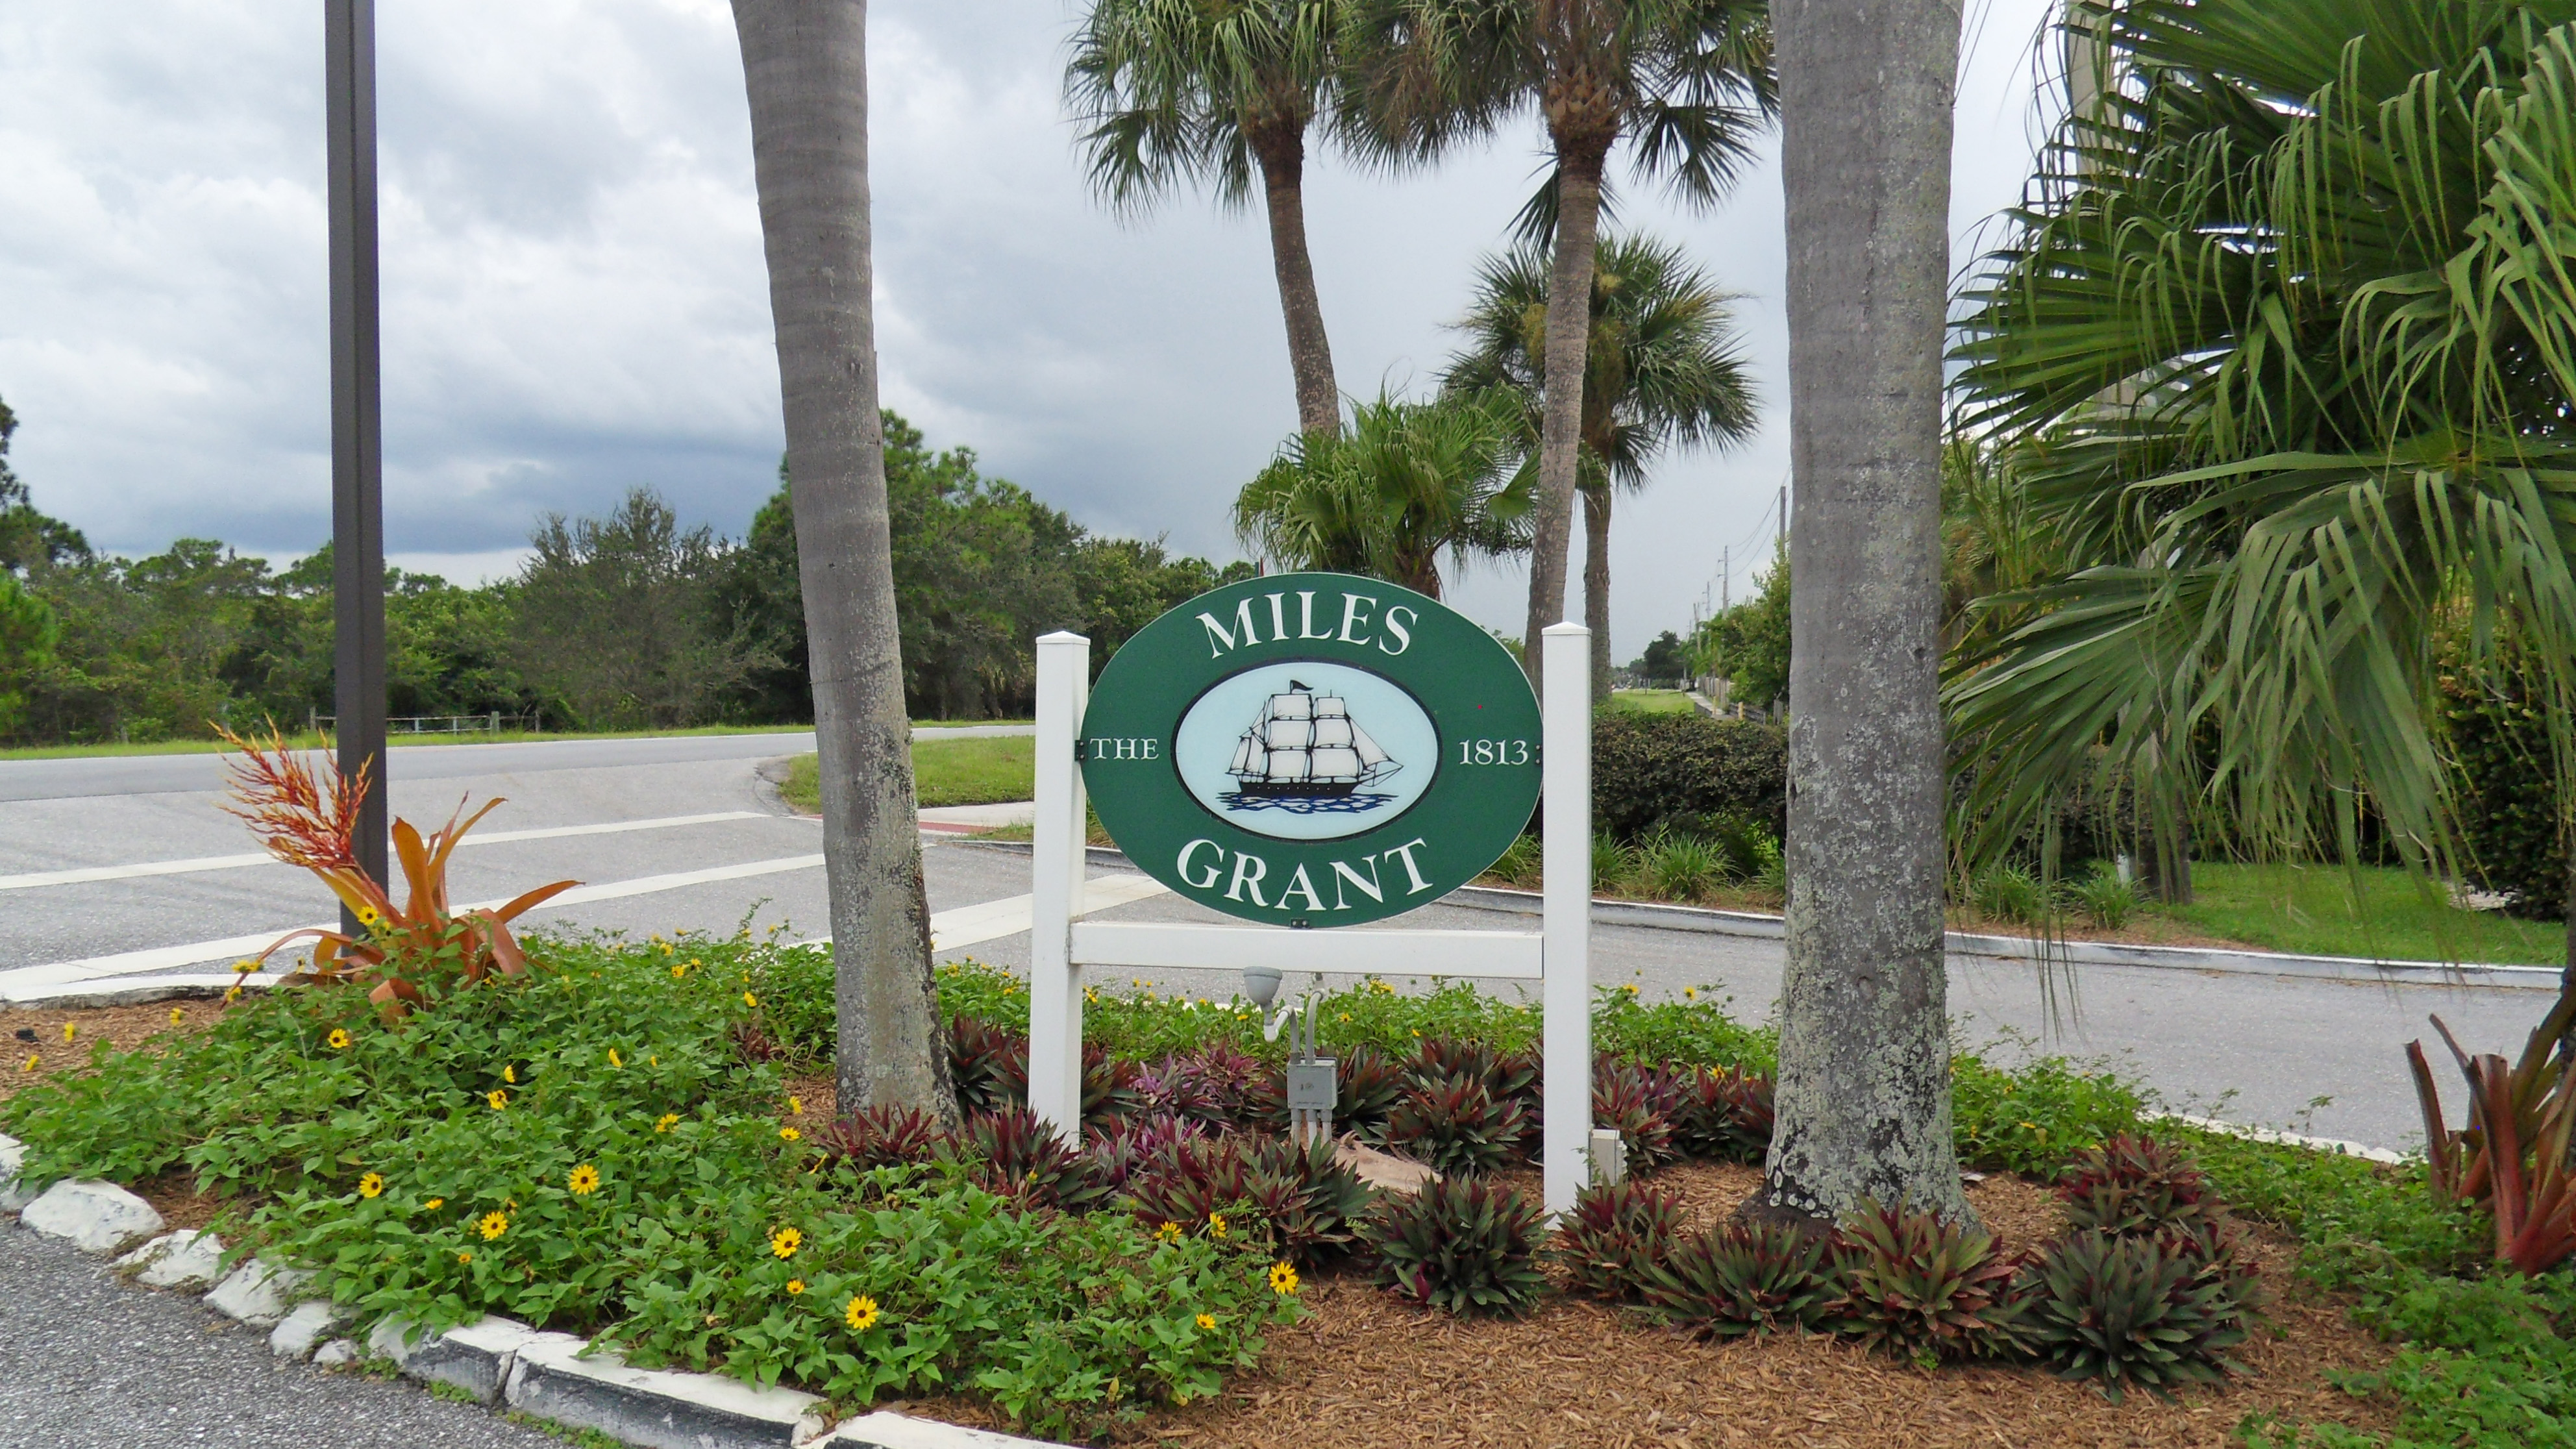 Miles Grant Condo in Rocky Point Just Listed